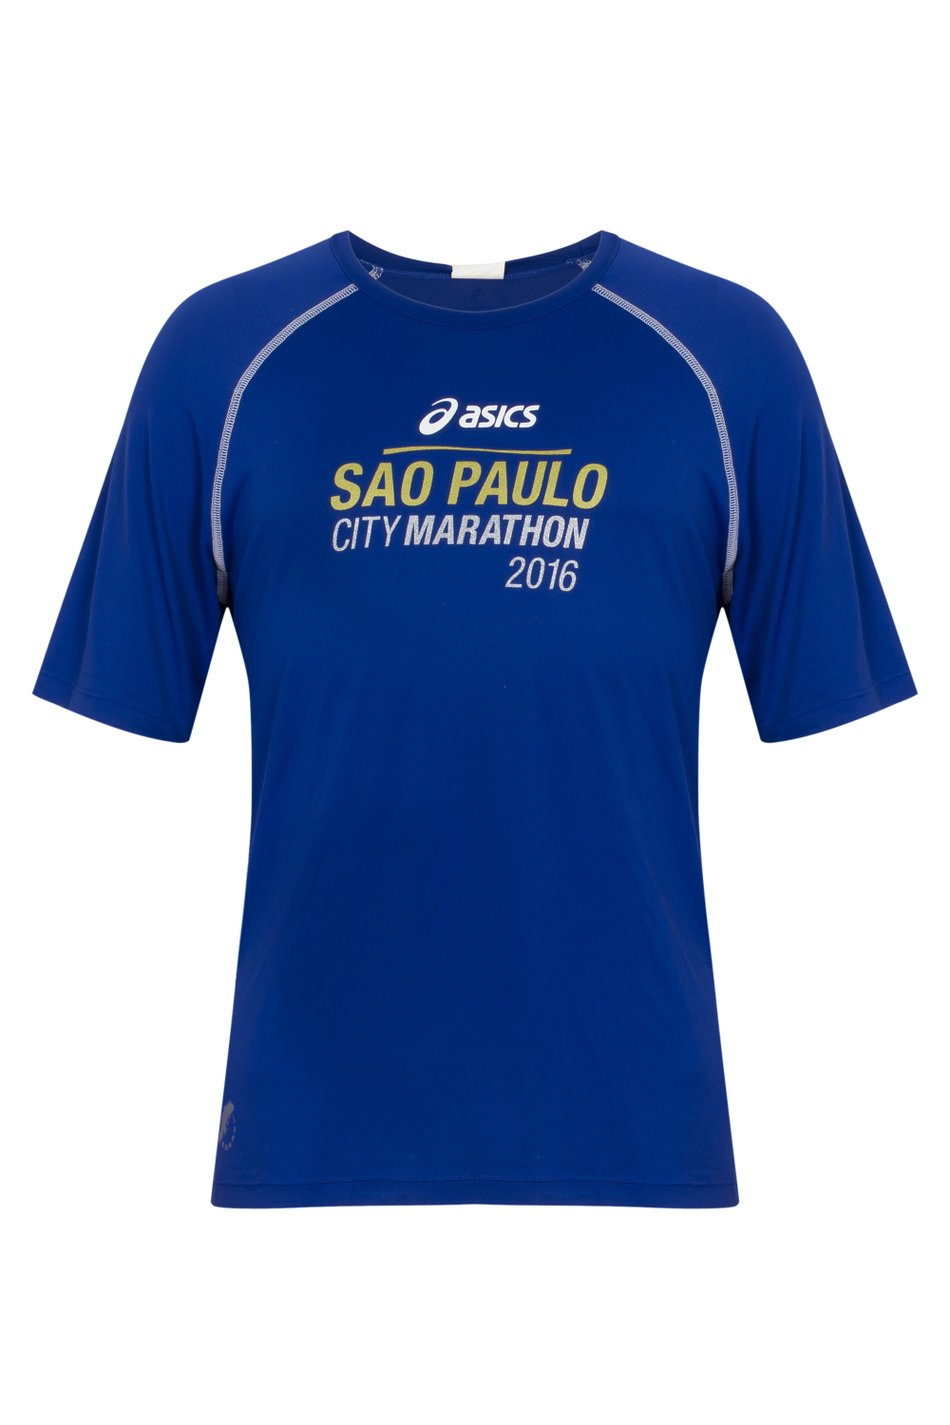 Camiseta SP City Marathon 2016 Azul Masc